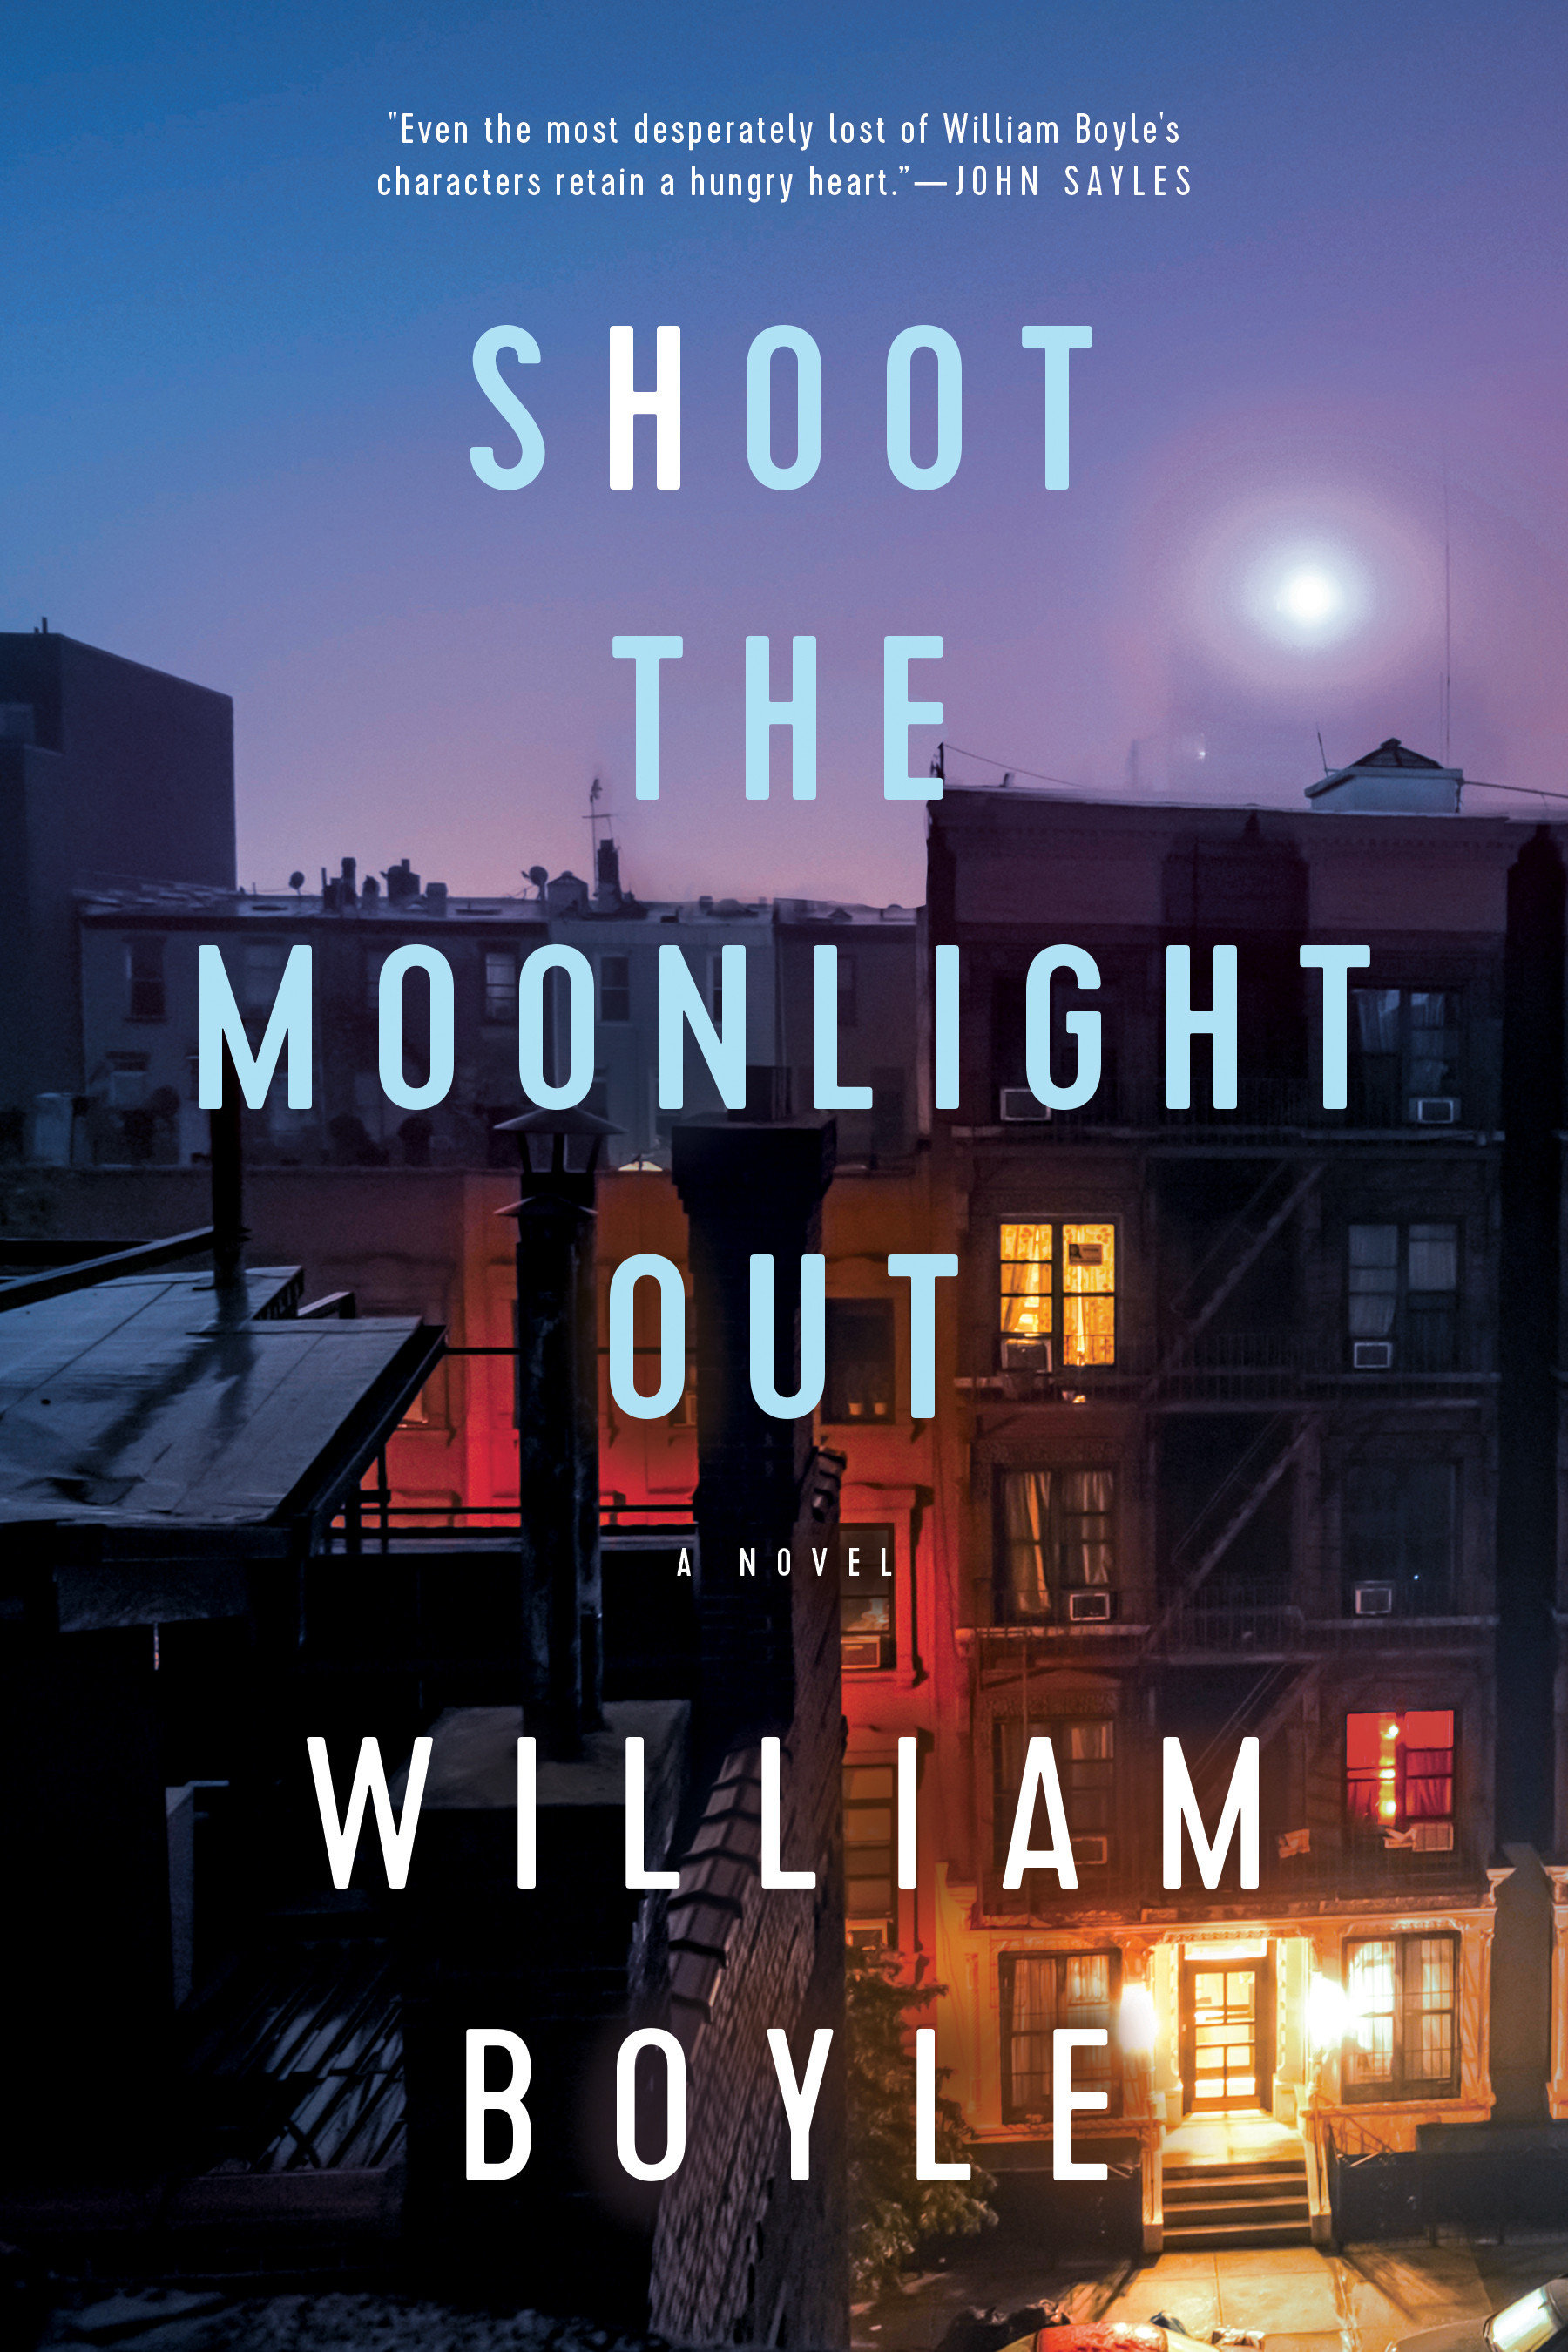 Shoot the Moonlight Out_Cover image.jpg